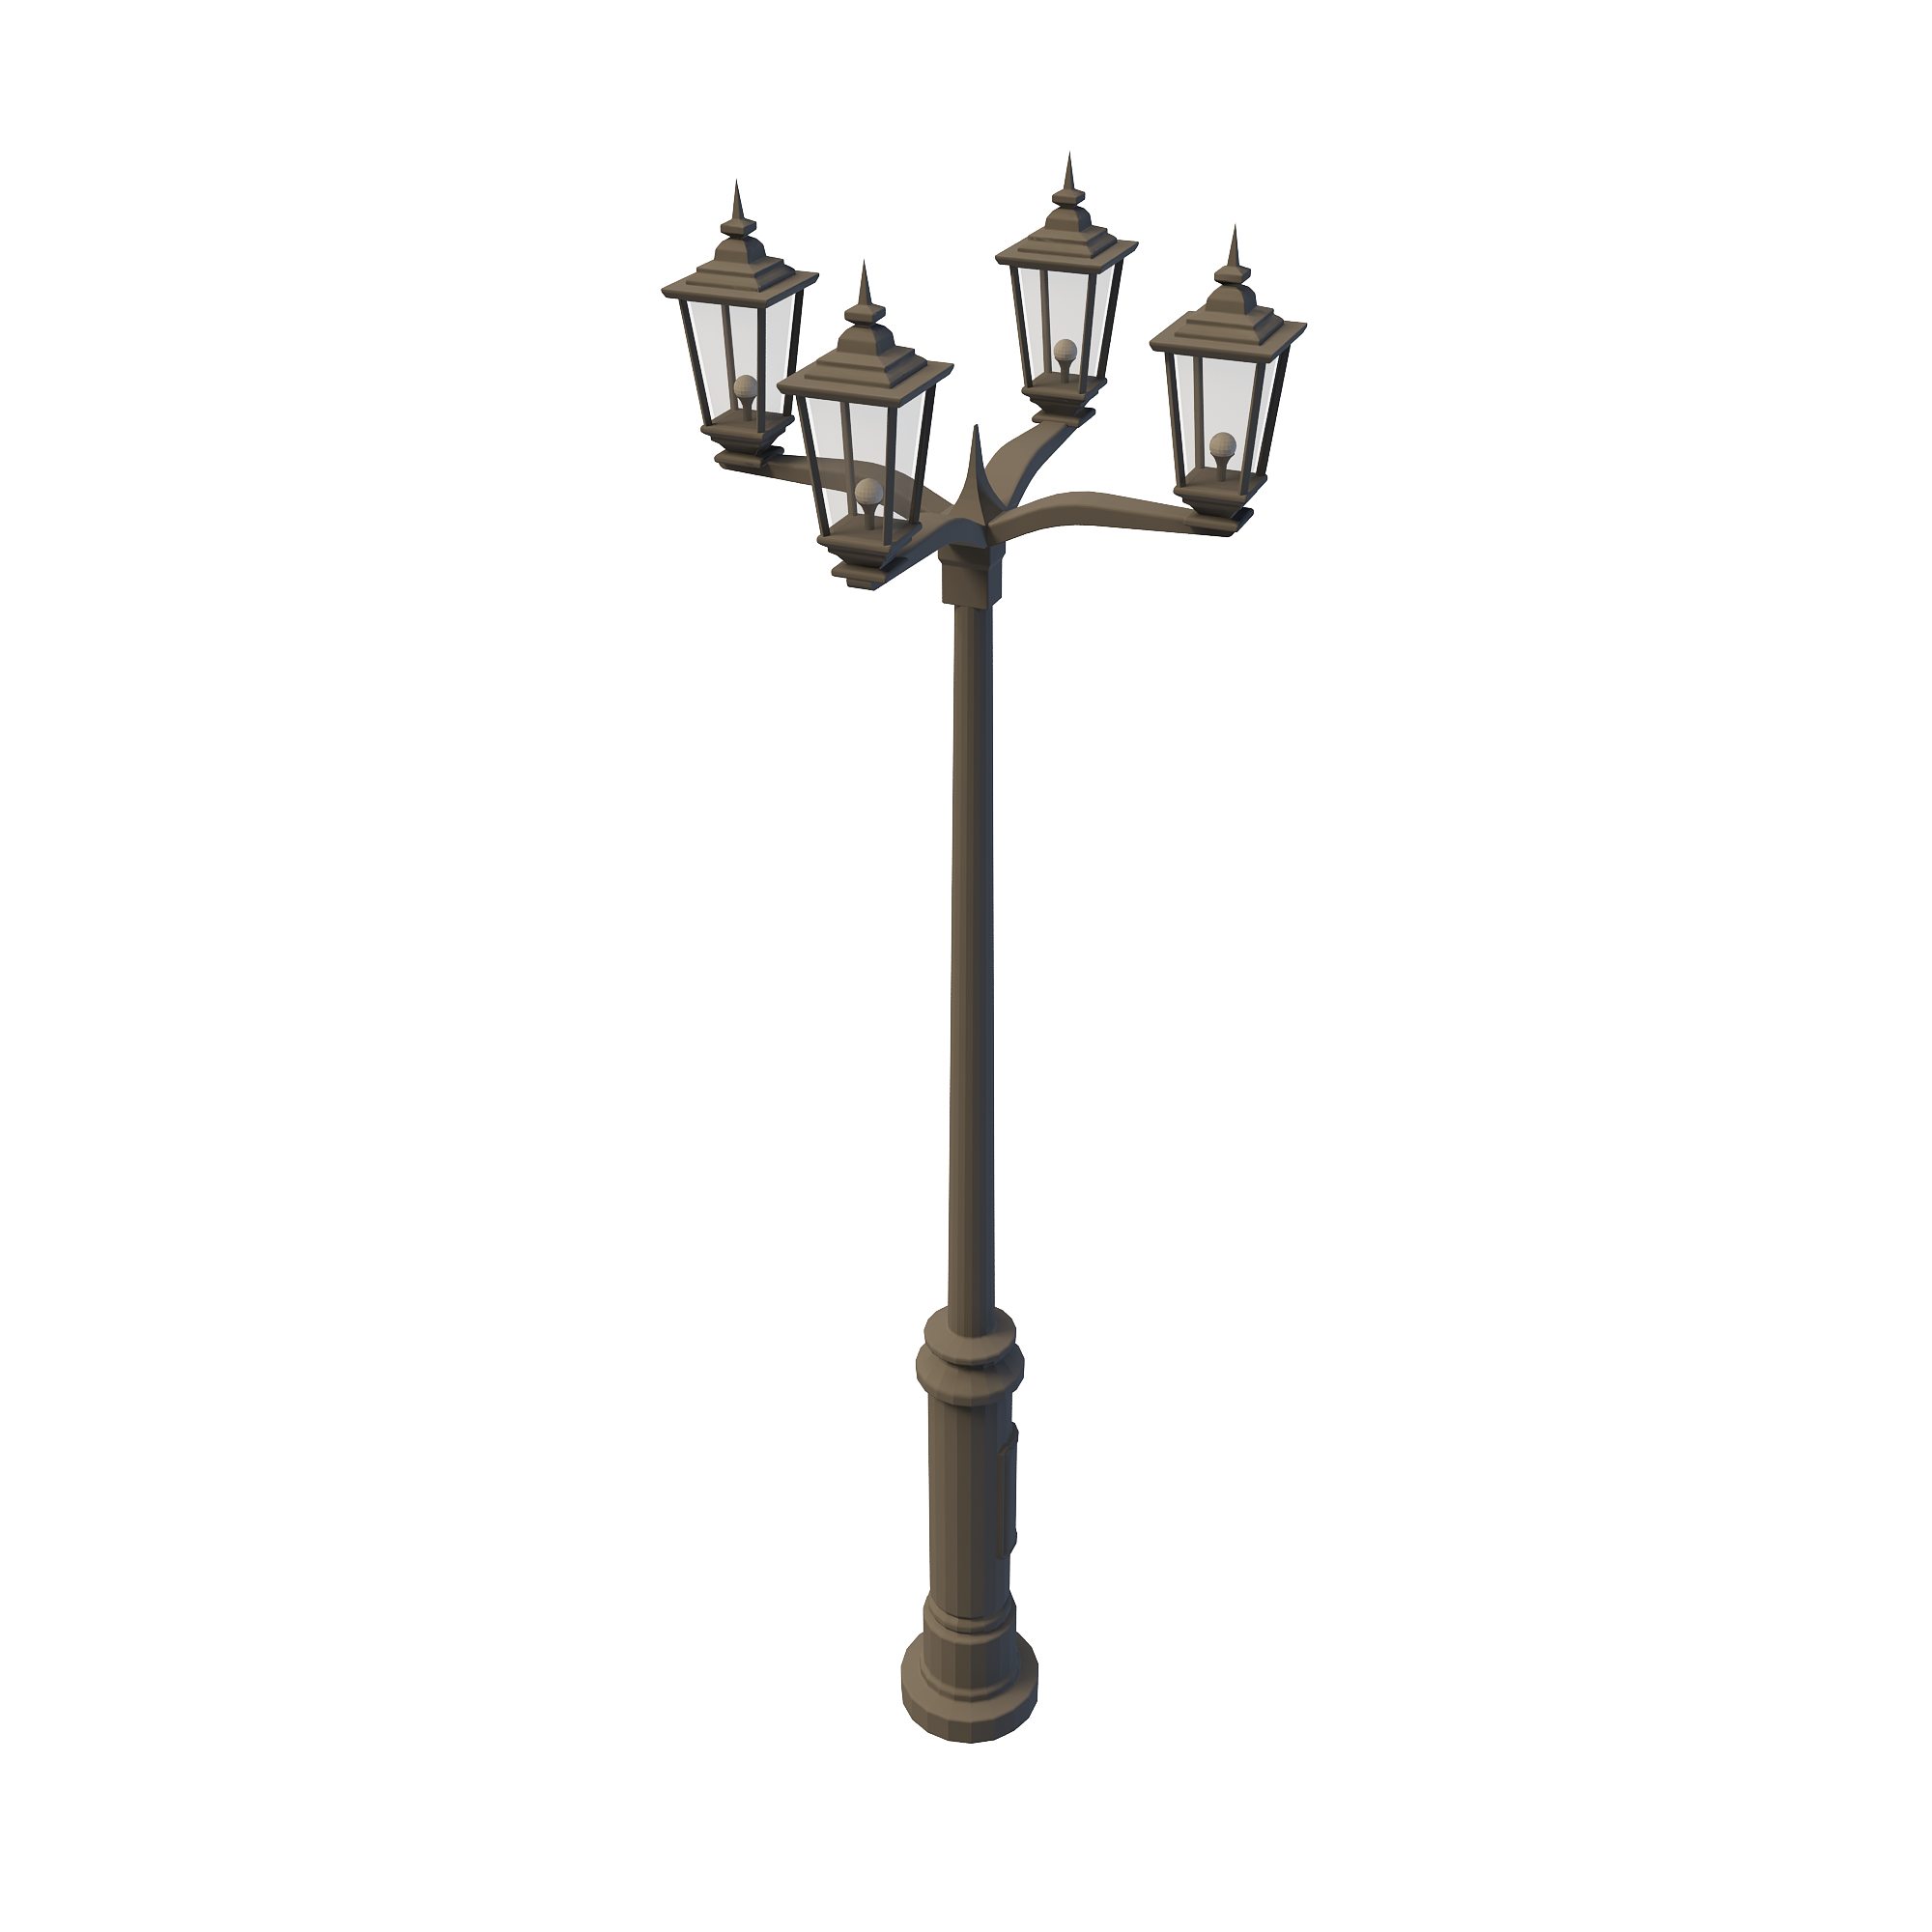 High Resolution Lamp Png Clipart #34937 - Free Icons and PNG ... for Png Street Lamp  150ifm